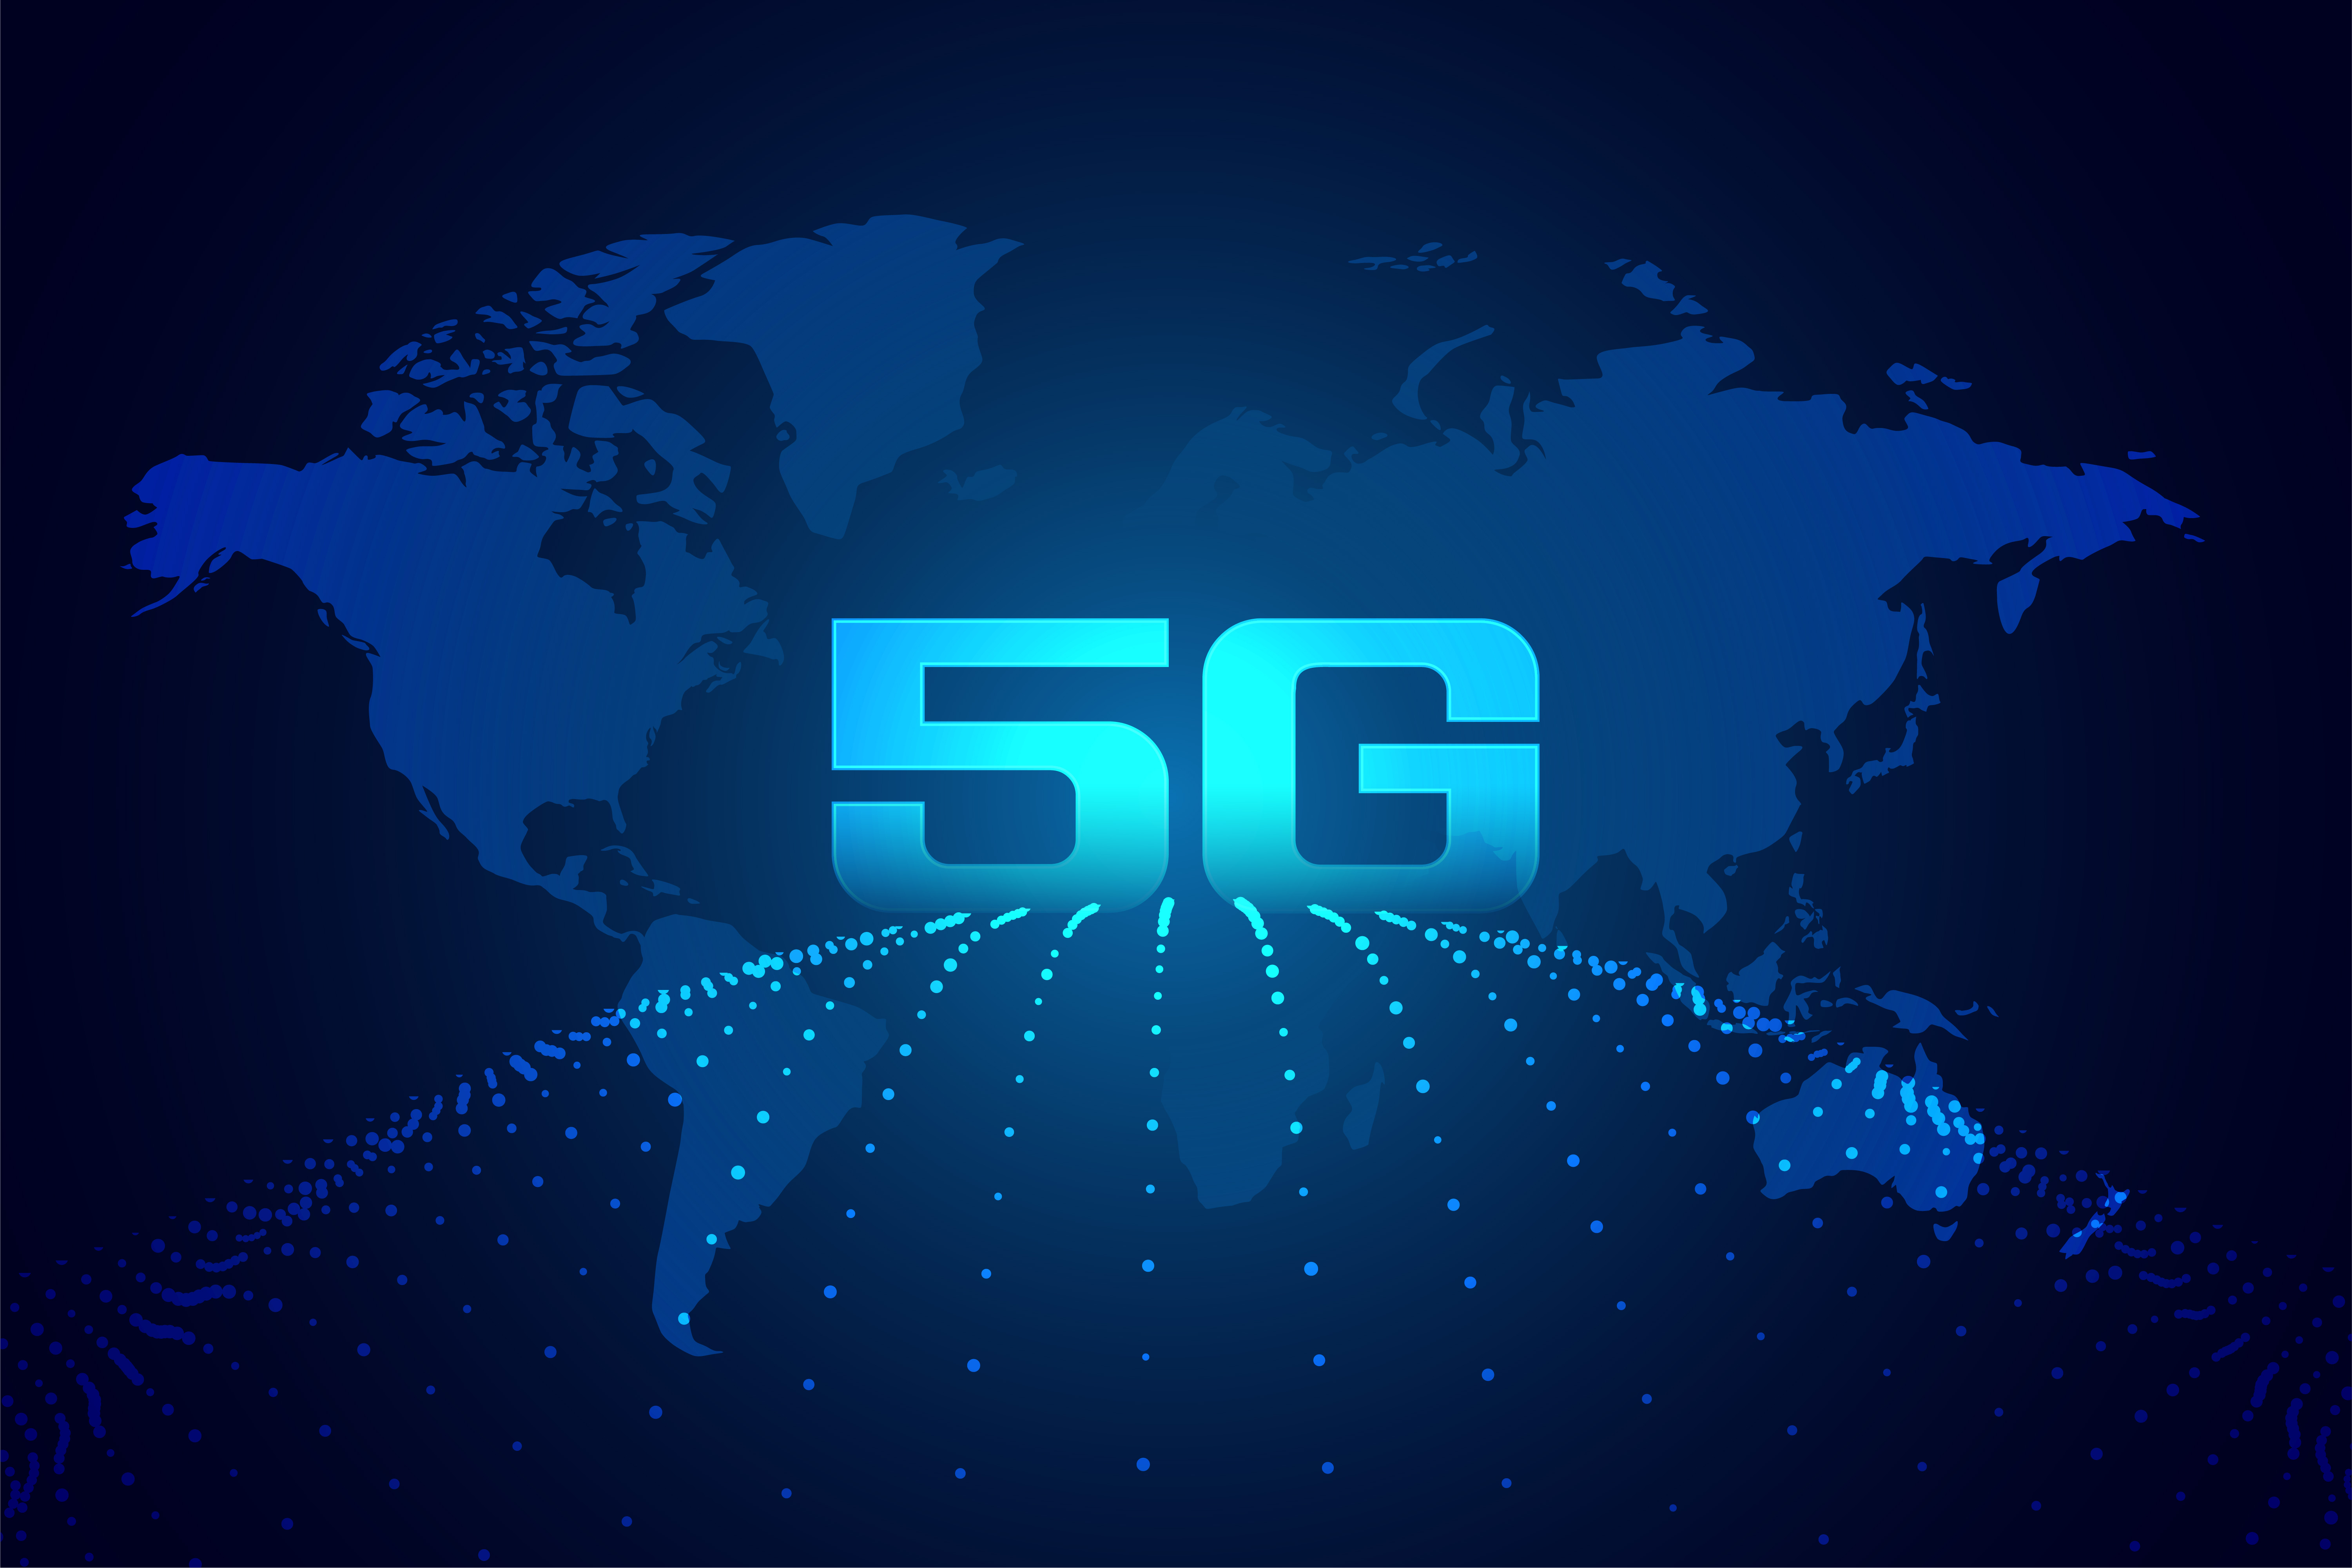 Features of 5G